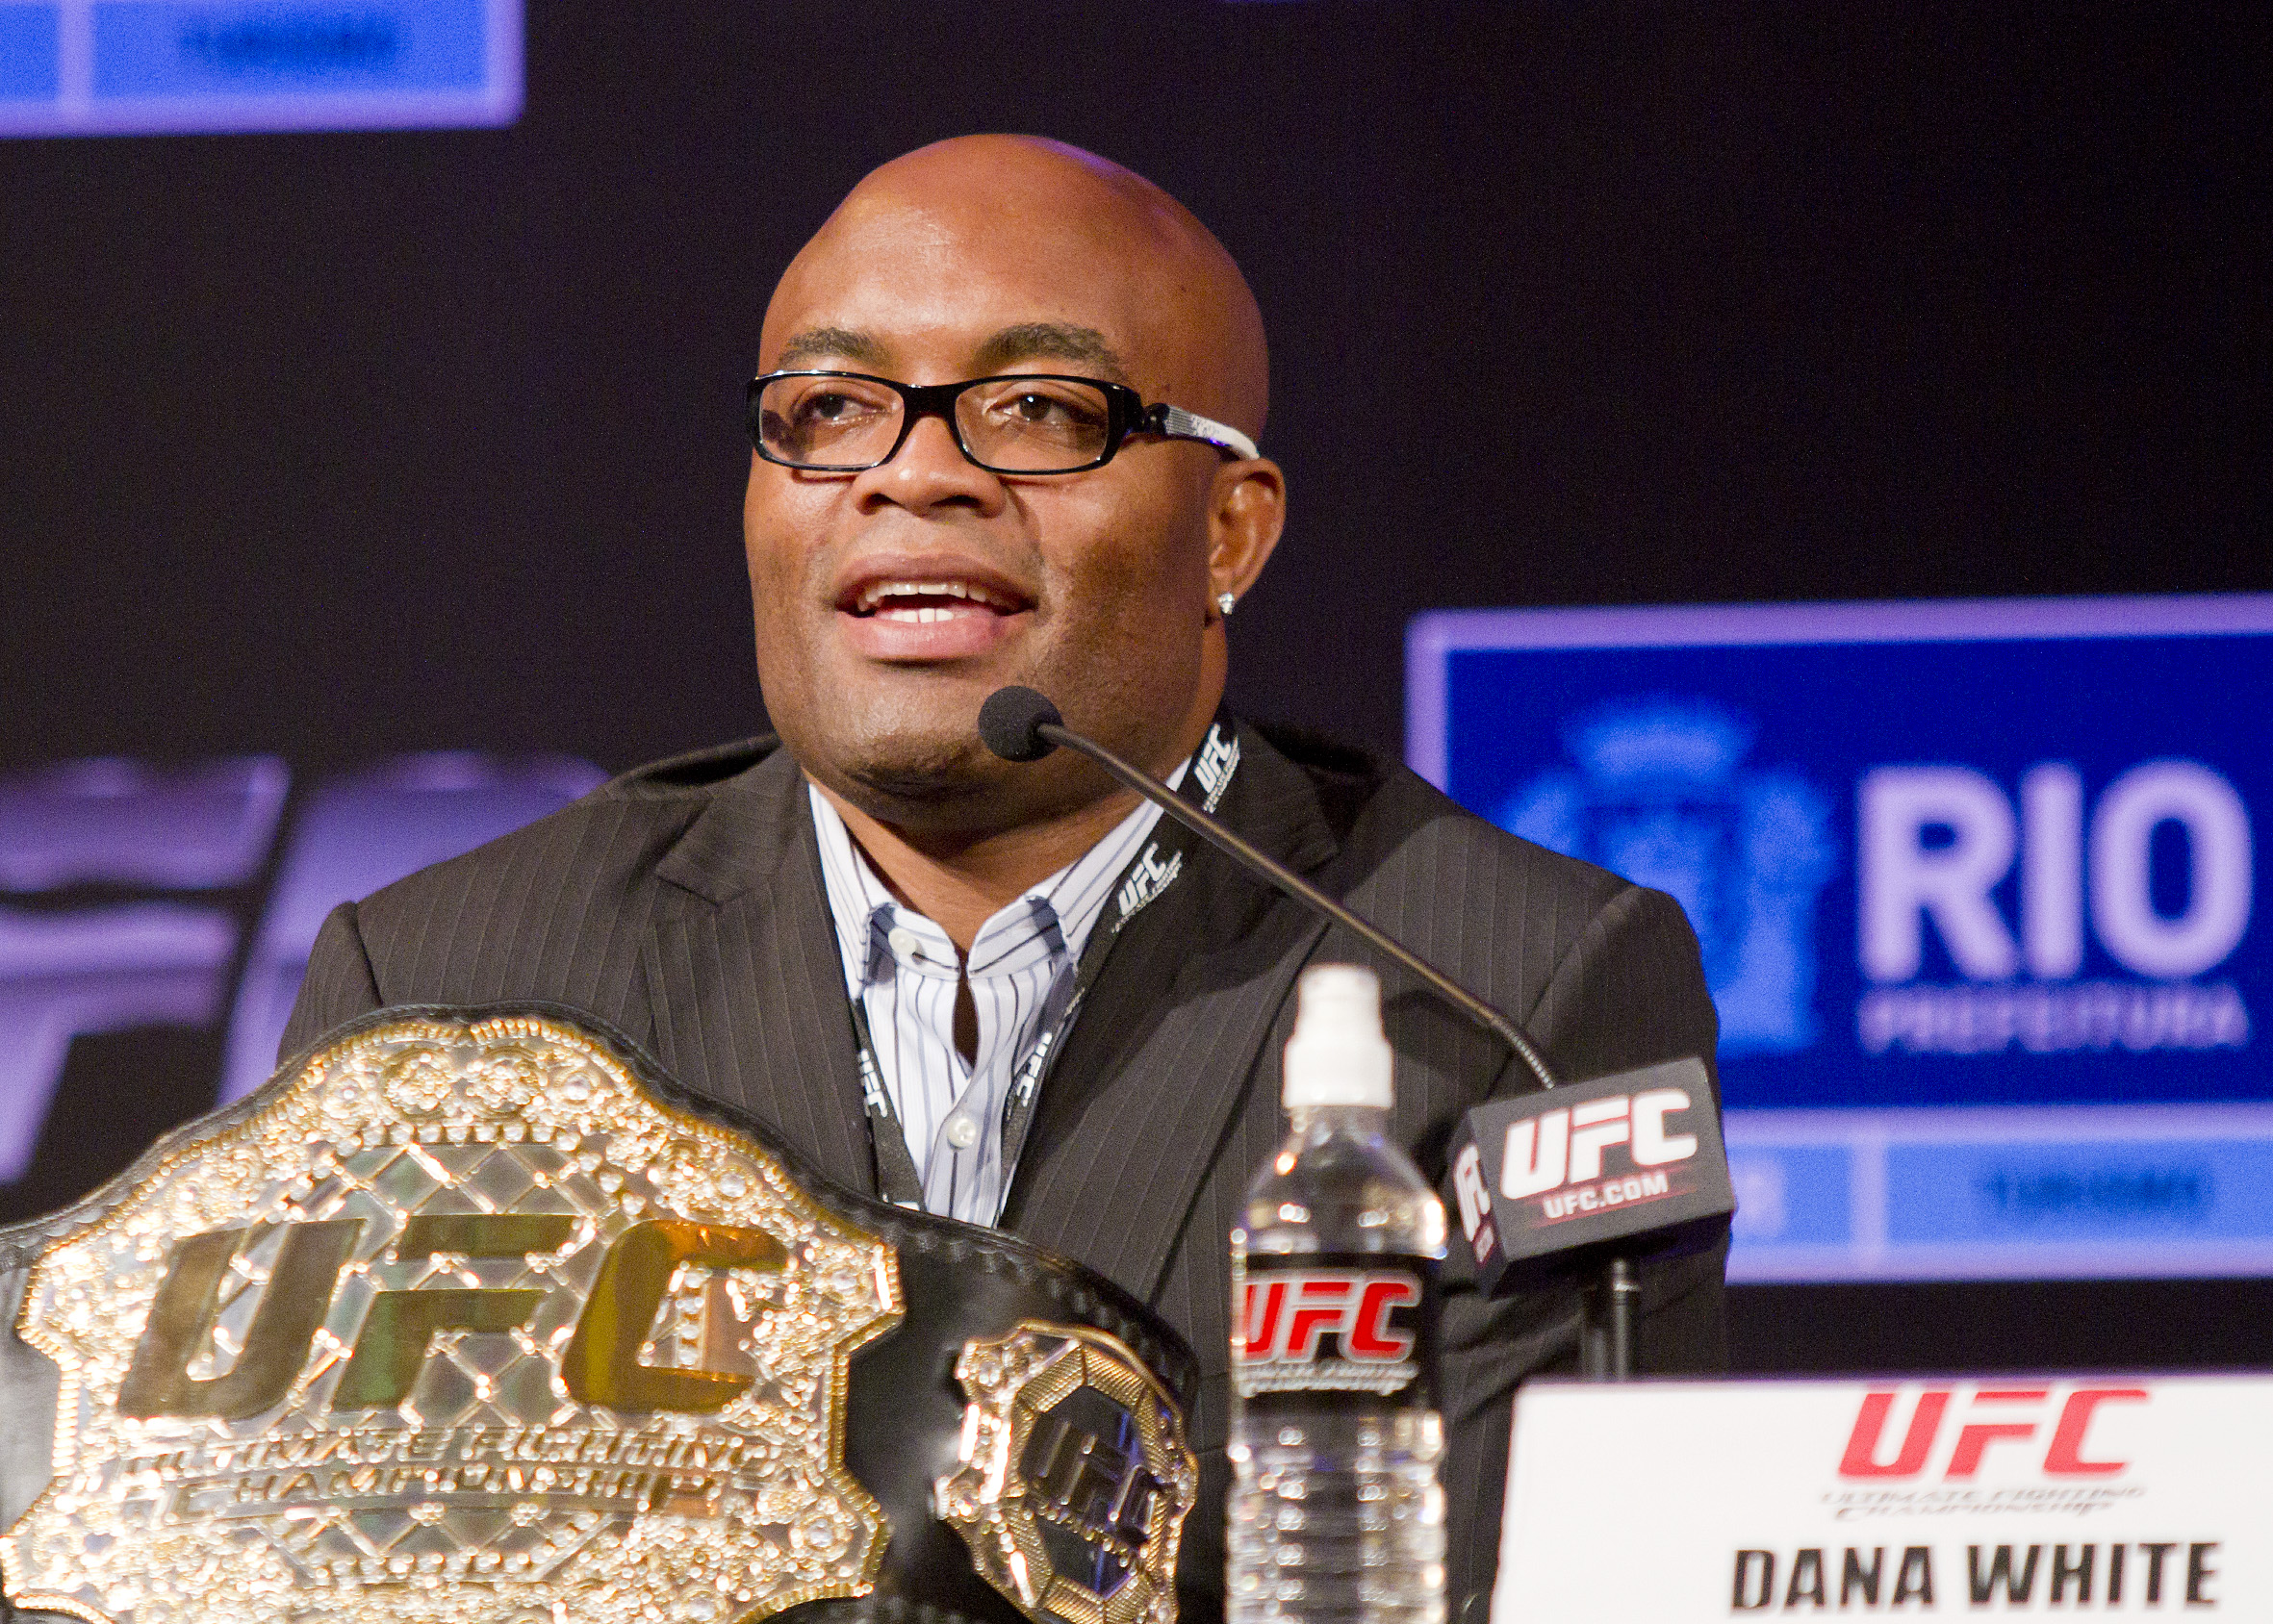 UFC Middleweight Champion Anderson Silva will be looking for his 9th consecutive title defense at UFC 134